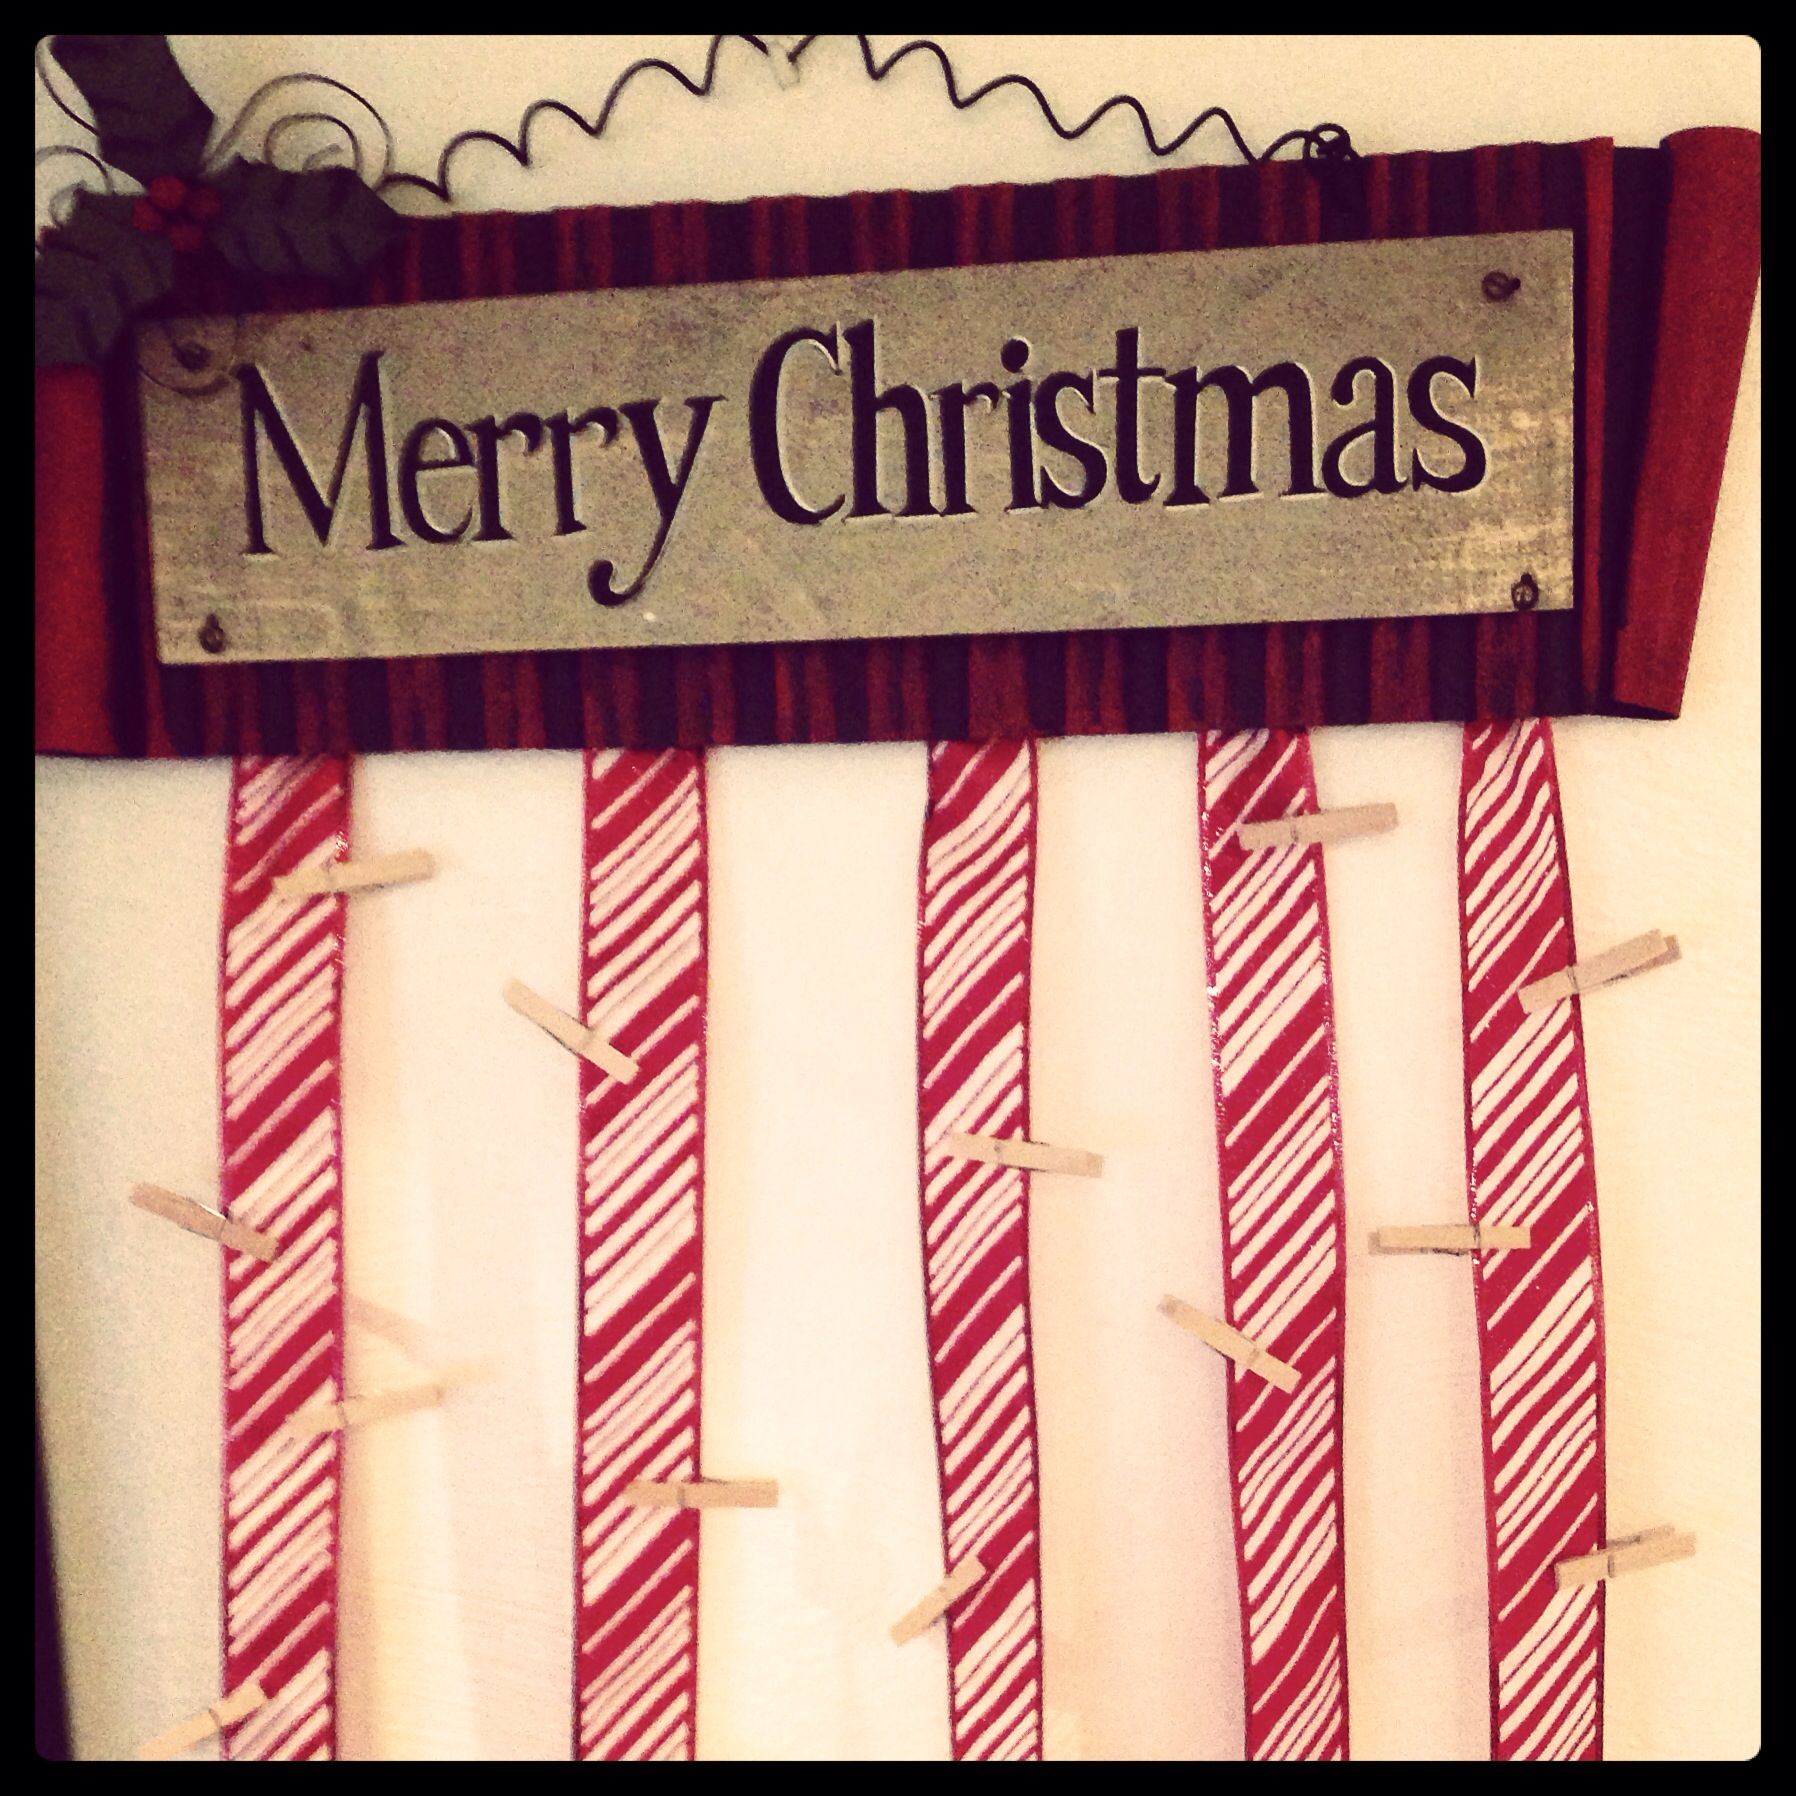 Christmas Card Holder Ribbon Attached To Sign From Joann With